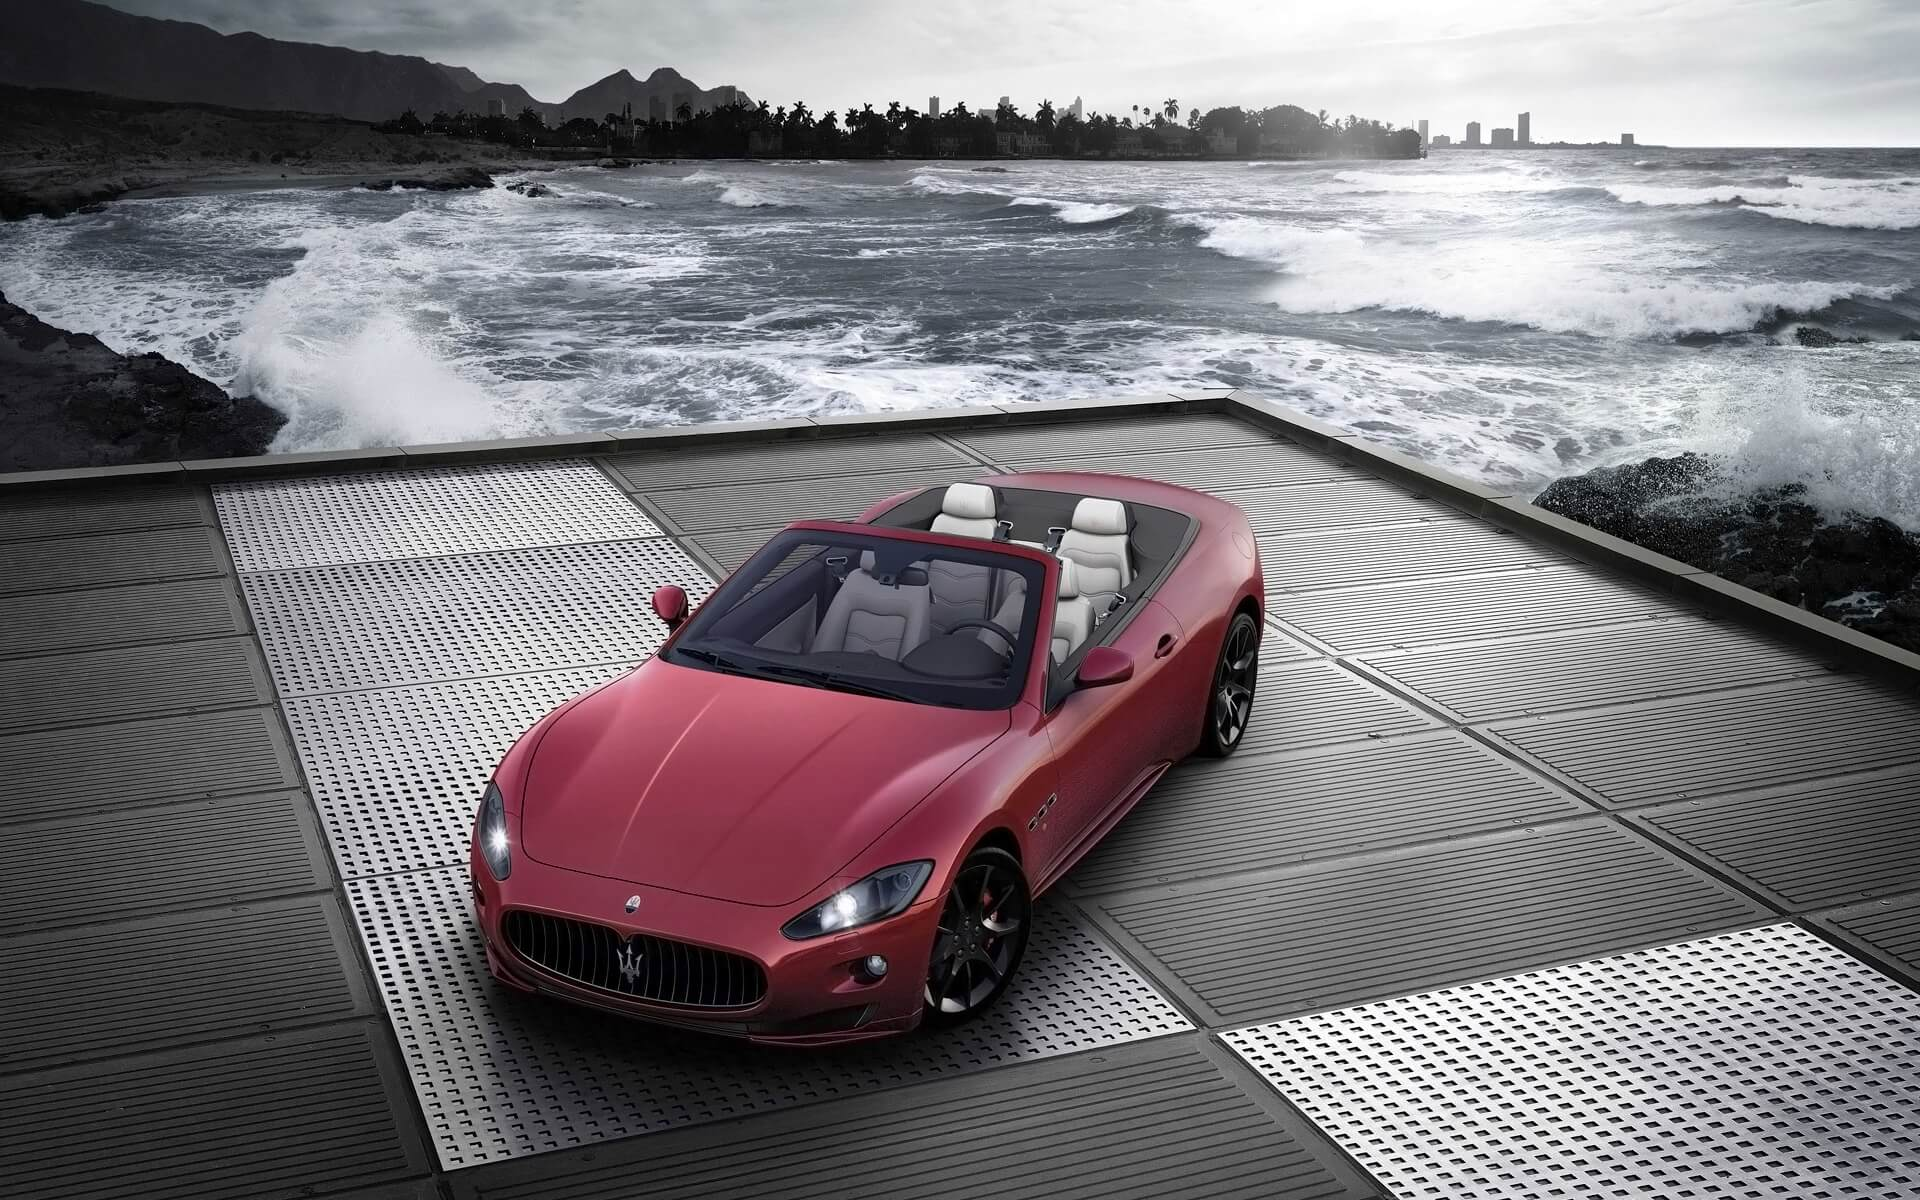 maserati grancabrio sport wallpaper background, wallpapers